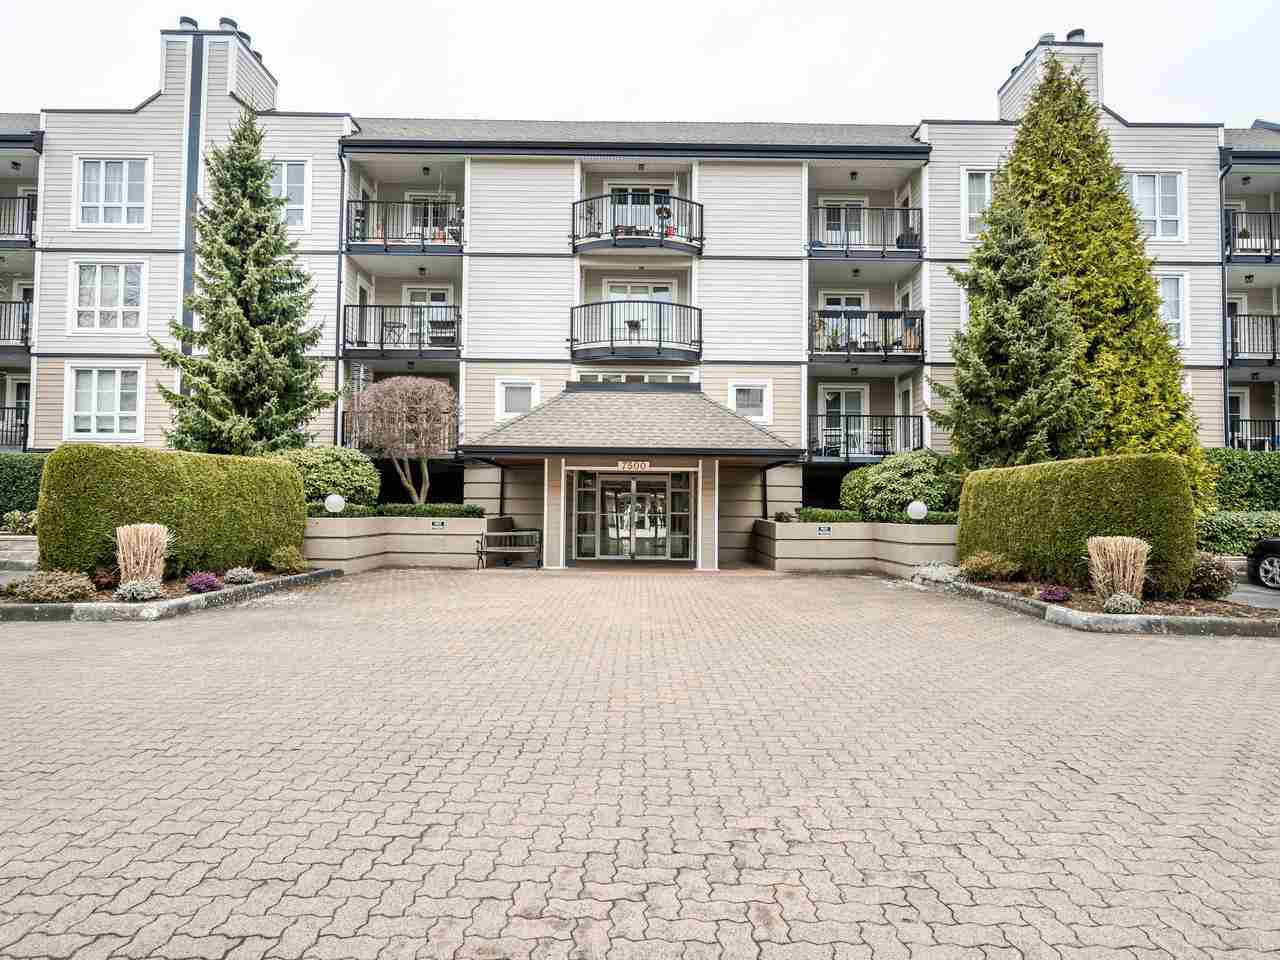 Main Photo: 107 7500 MINORU Boulevard in Richmond: Brighouse South Condo for sale : MLS®# R2444051